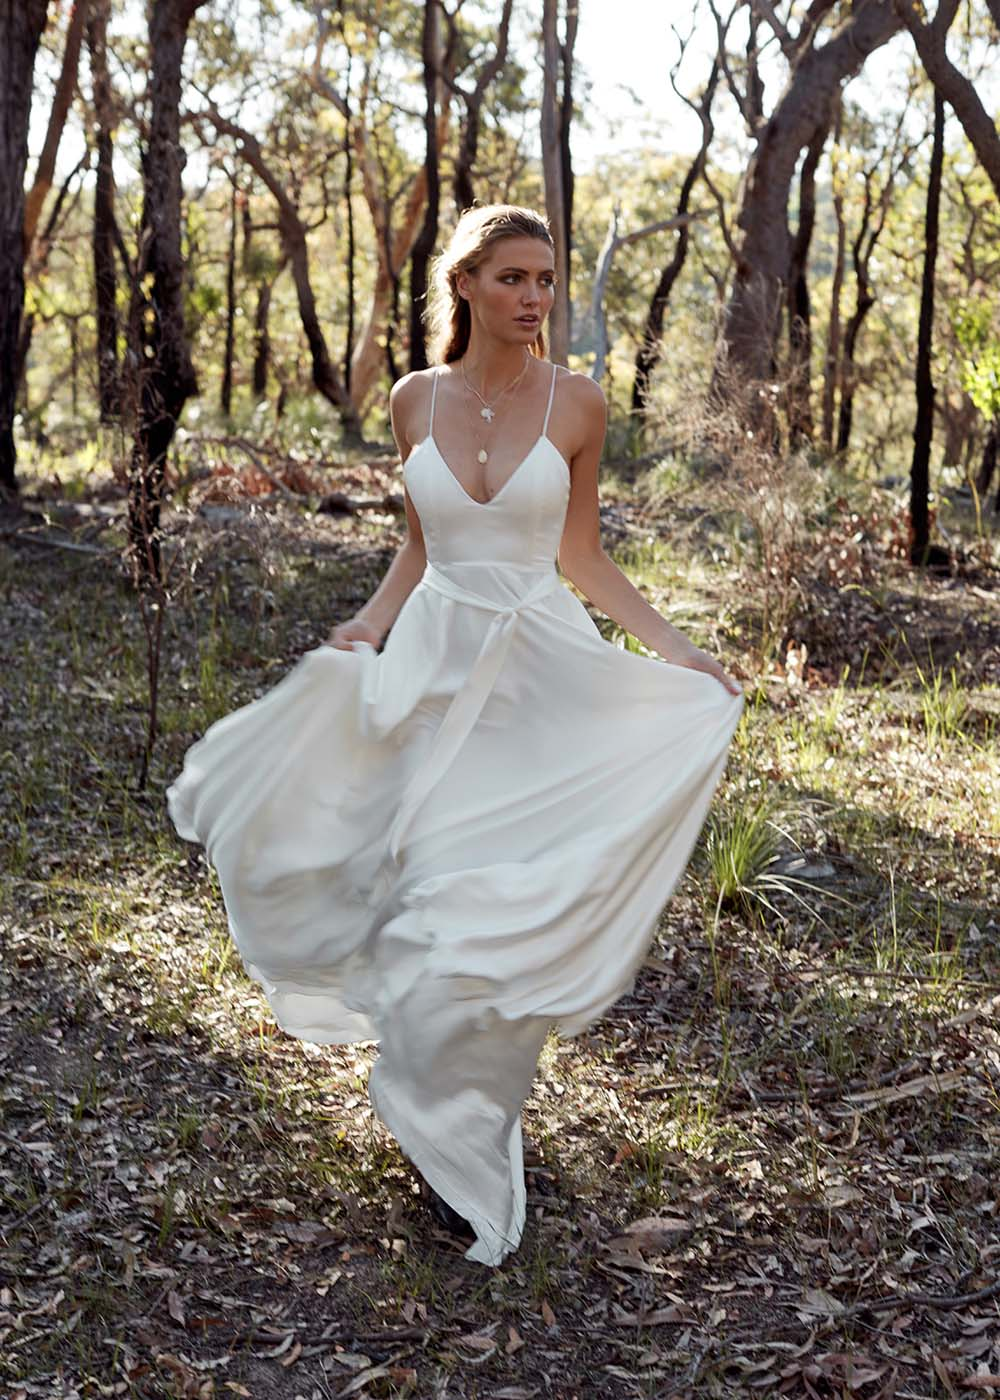 & For Love 2020 Wedding Dresses